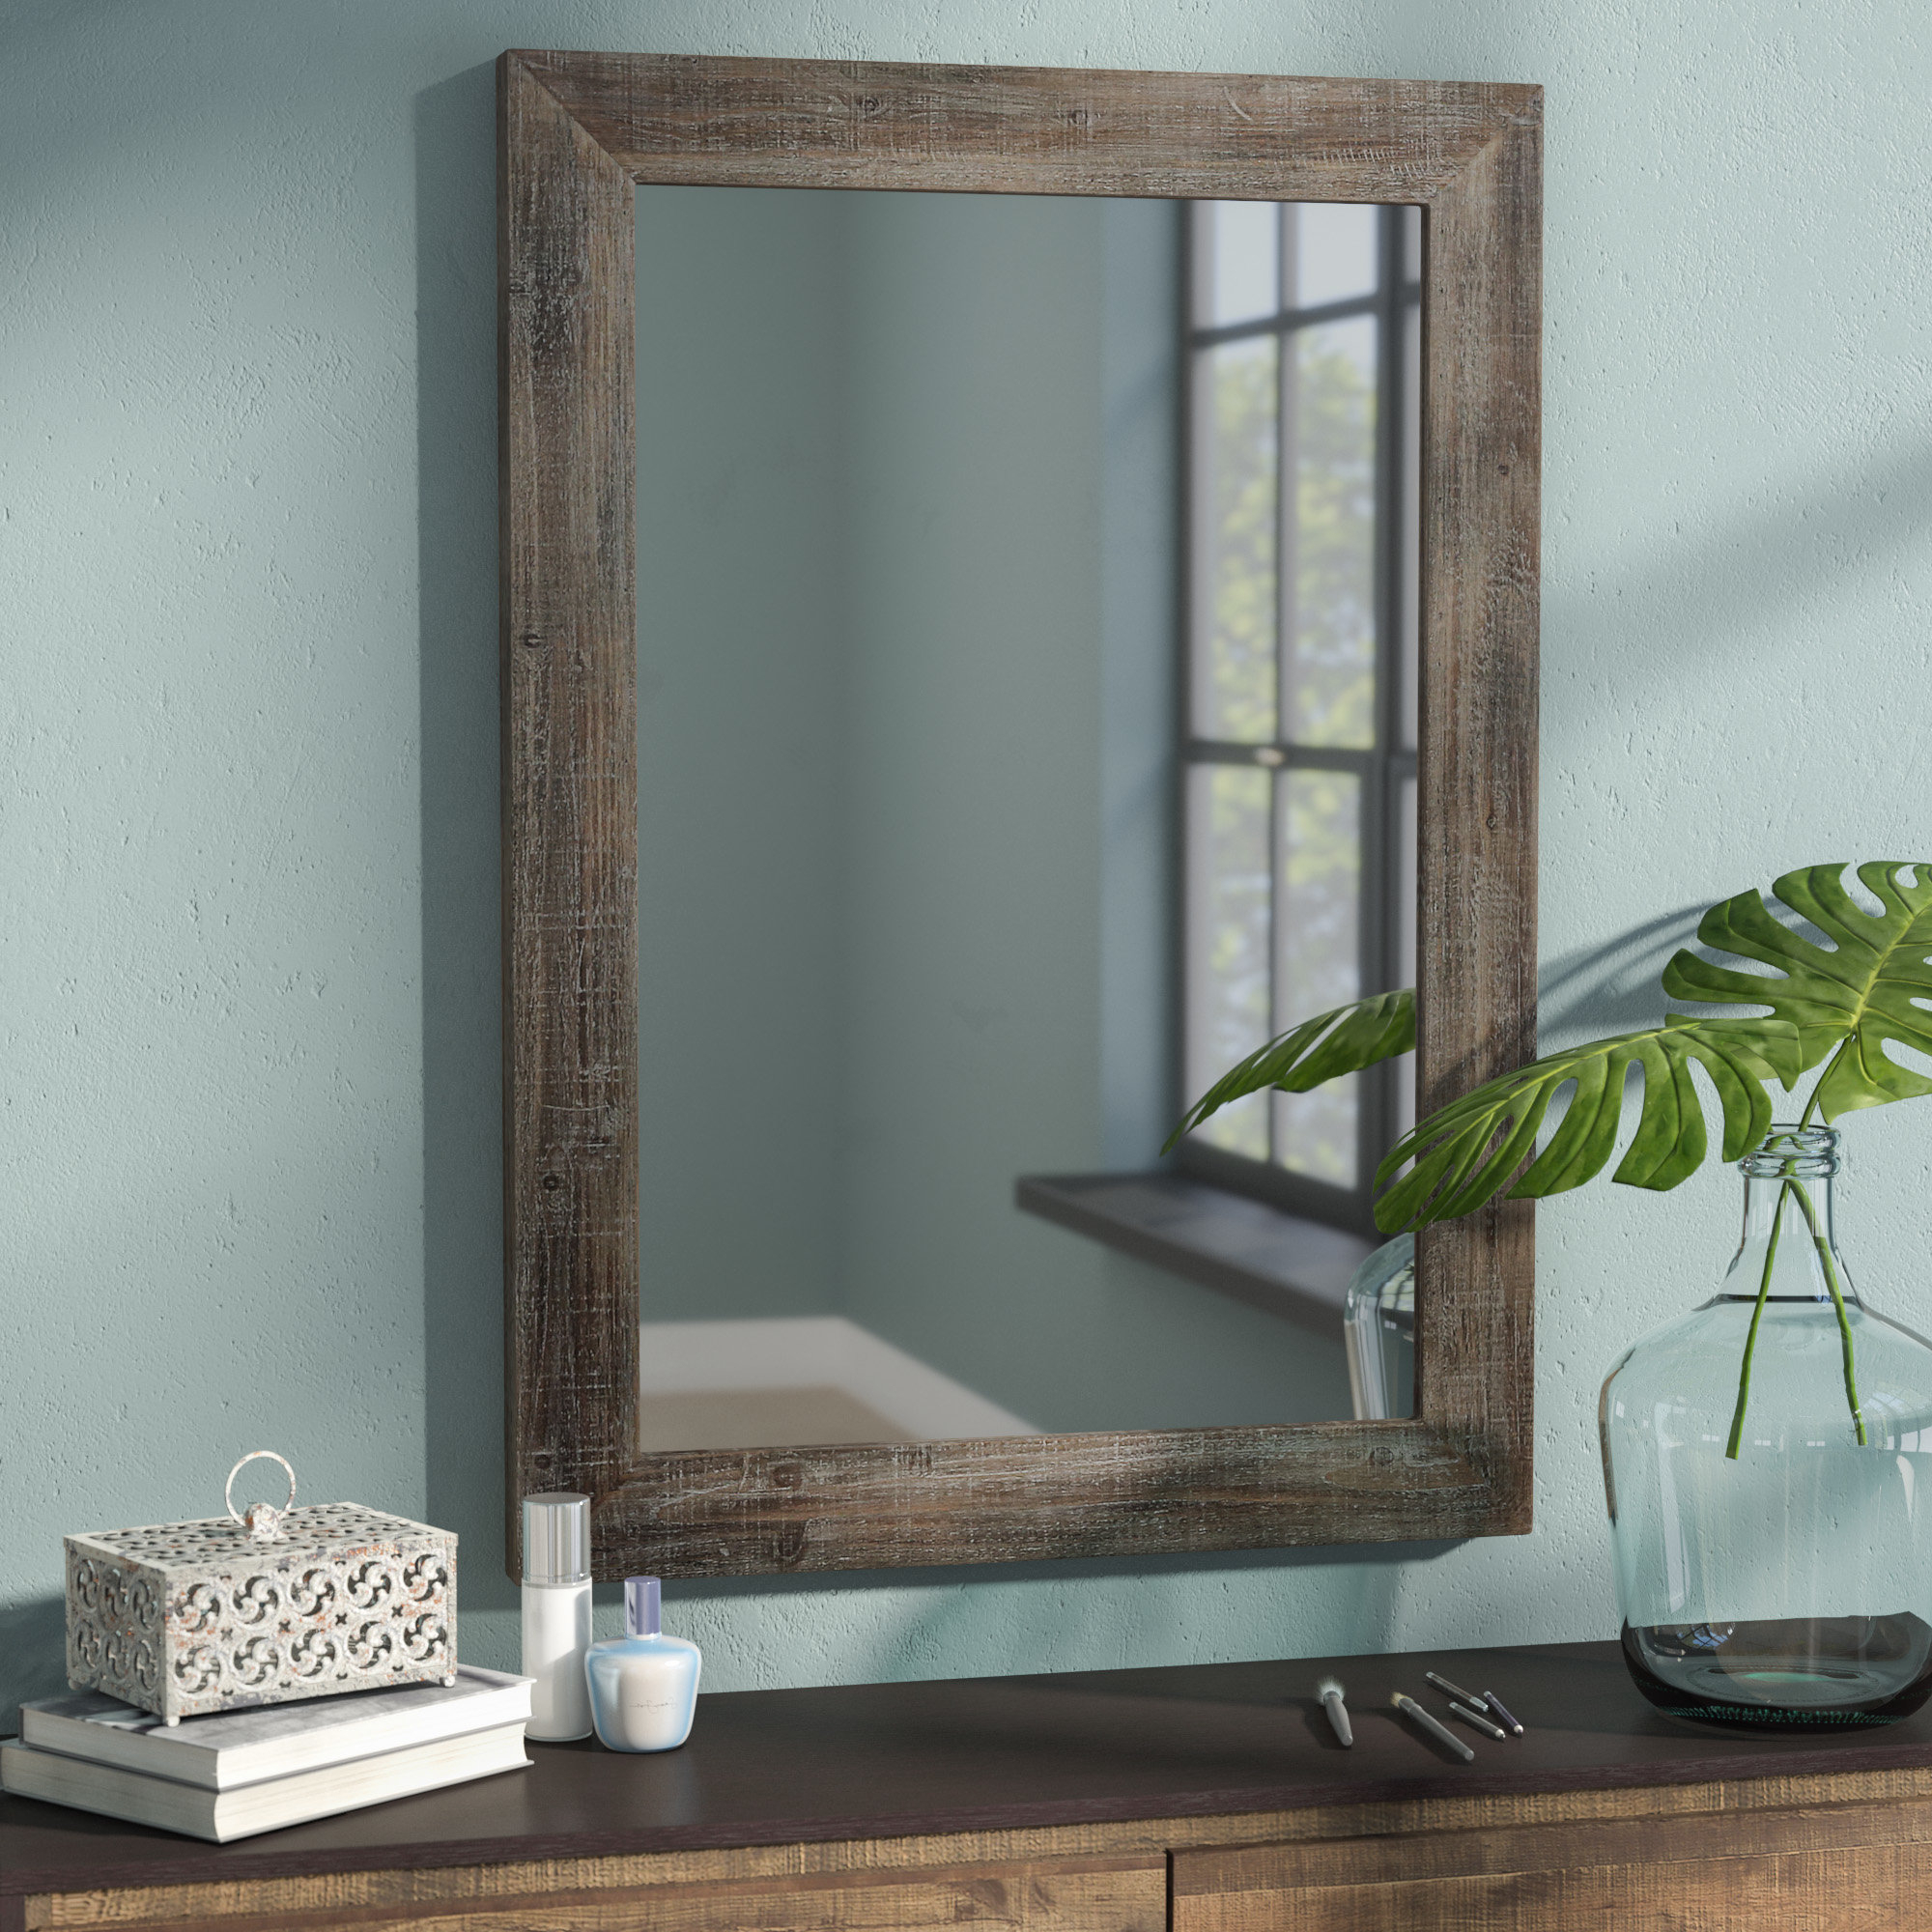 Rectangle Accent Wall Mirrors Throughout Most Recently Released Rectangle Wood Accent Wall Mirror (View 11 of 20)